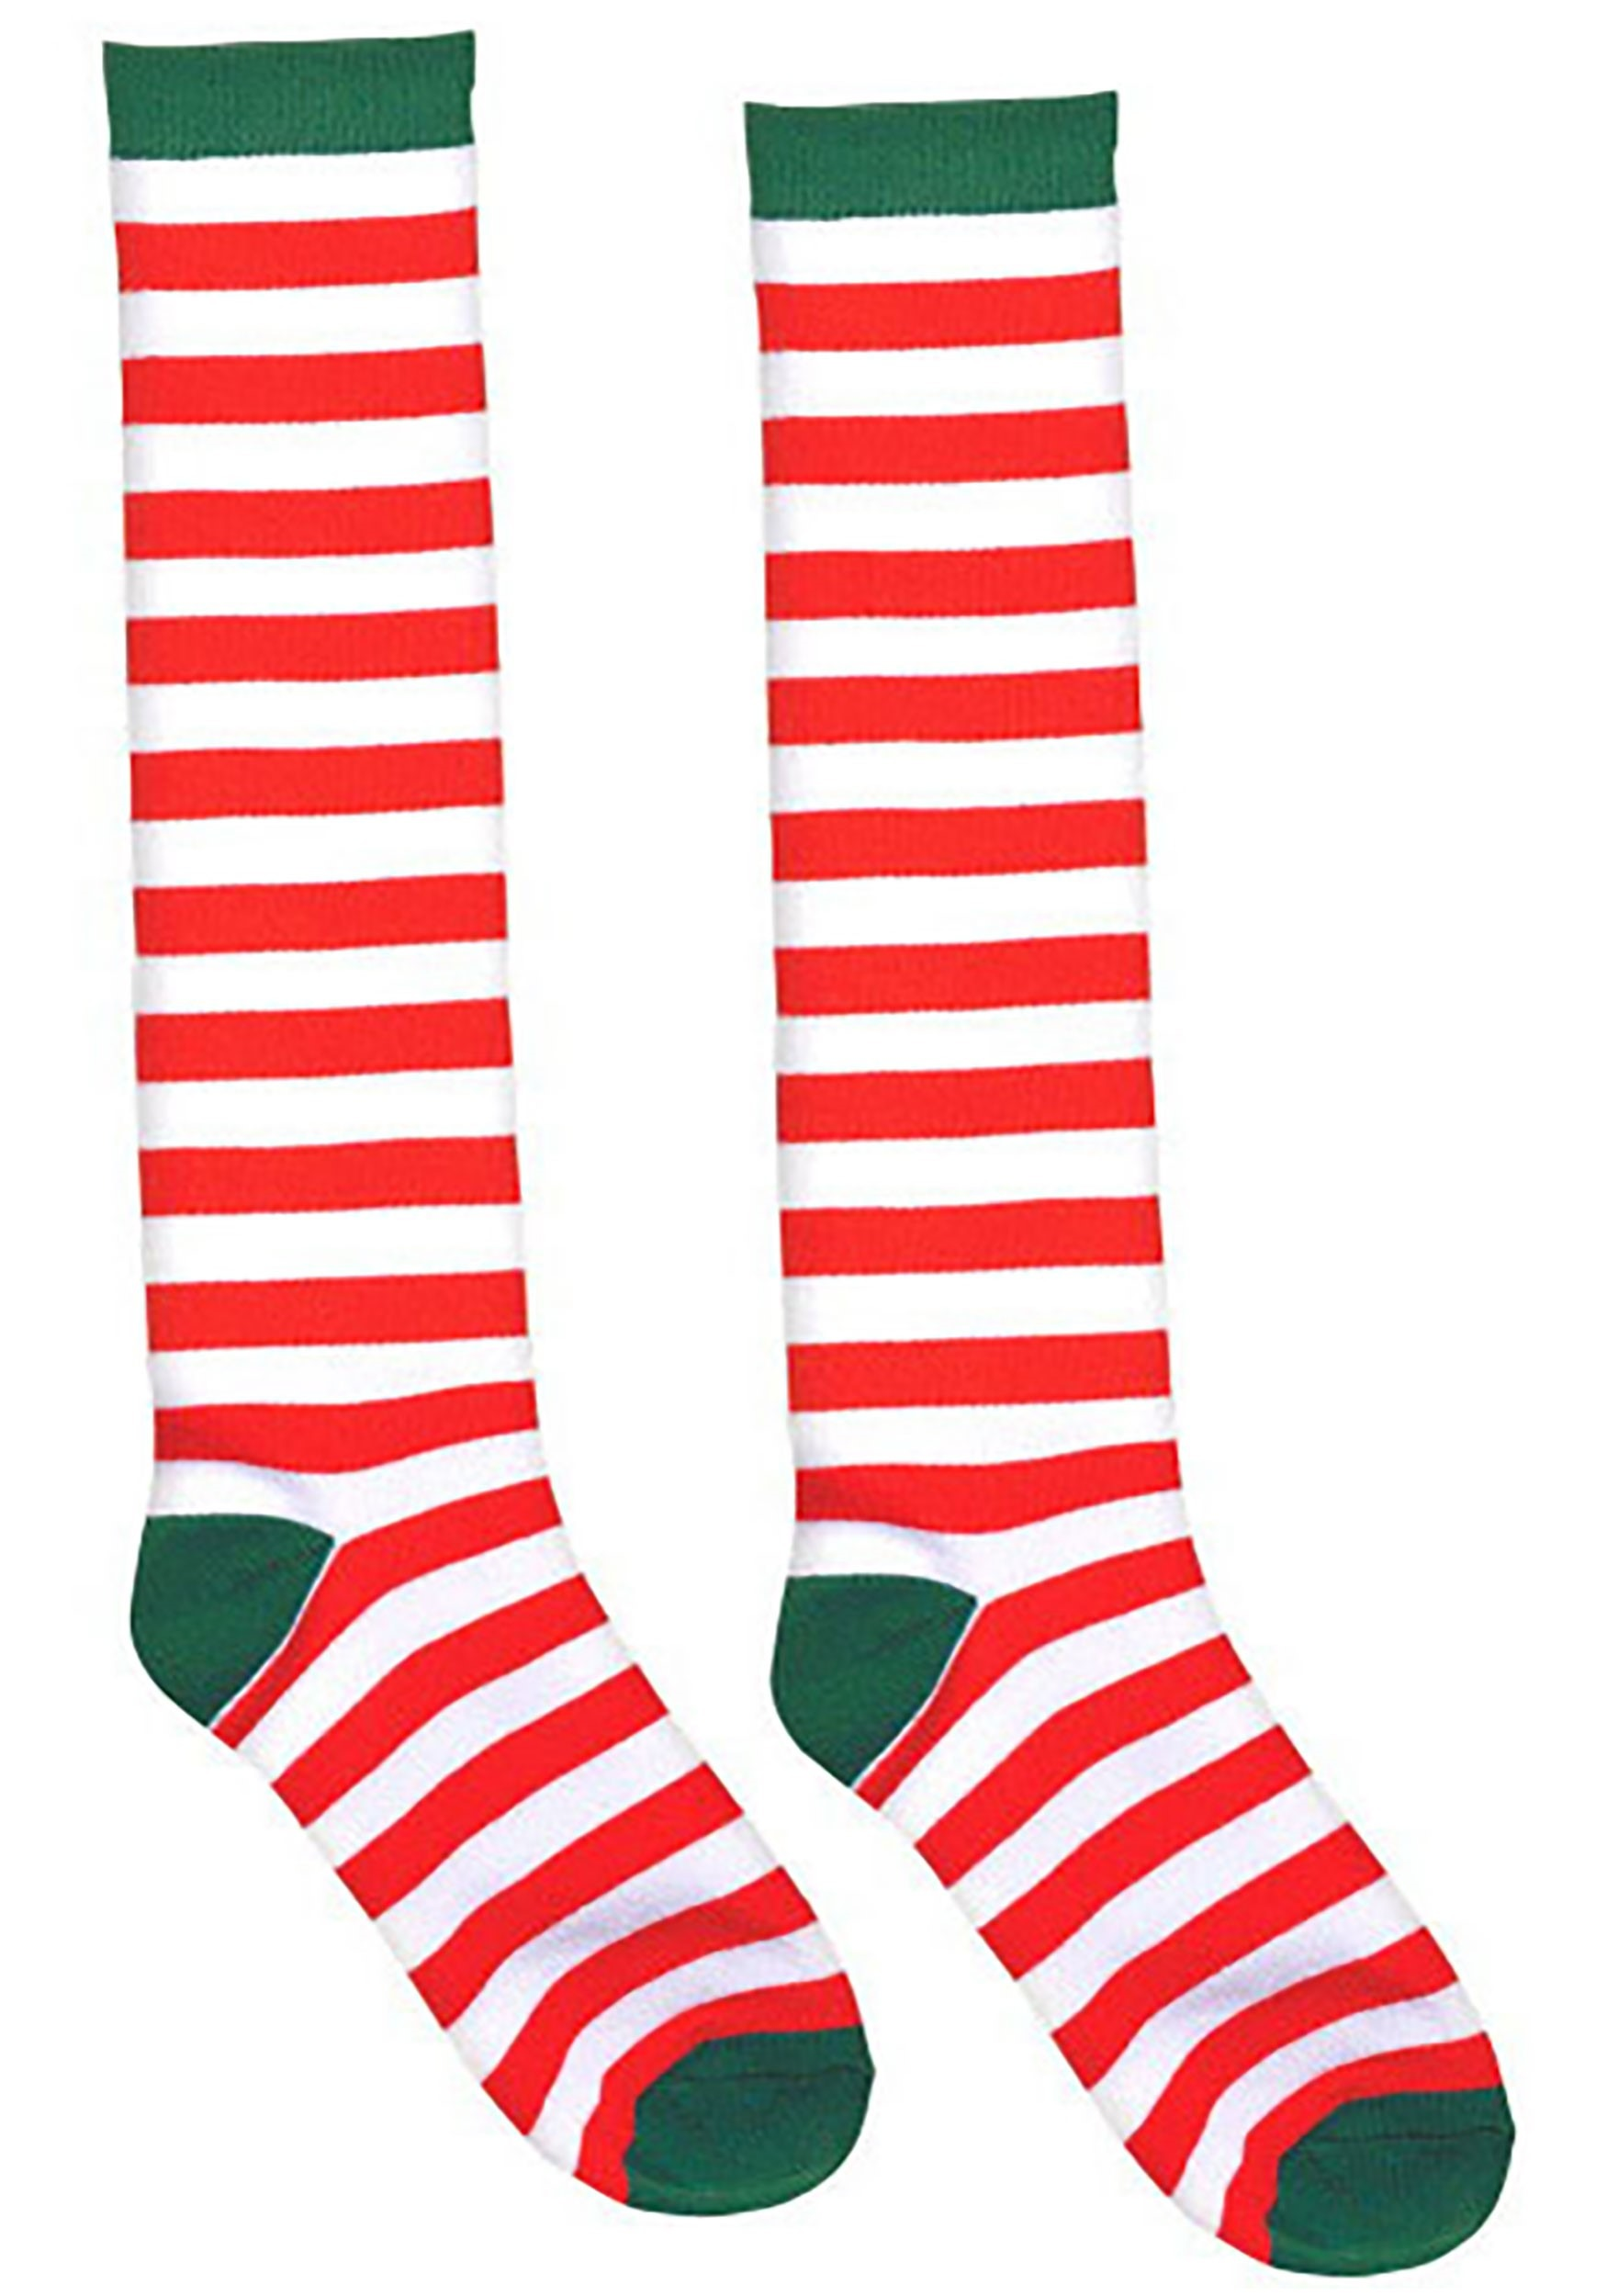 White_and_Red_Striped_Socks_for_Adults